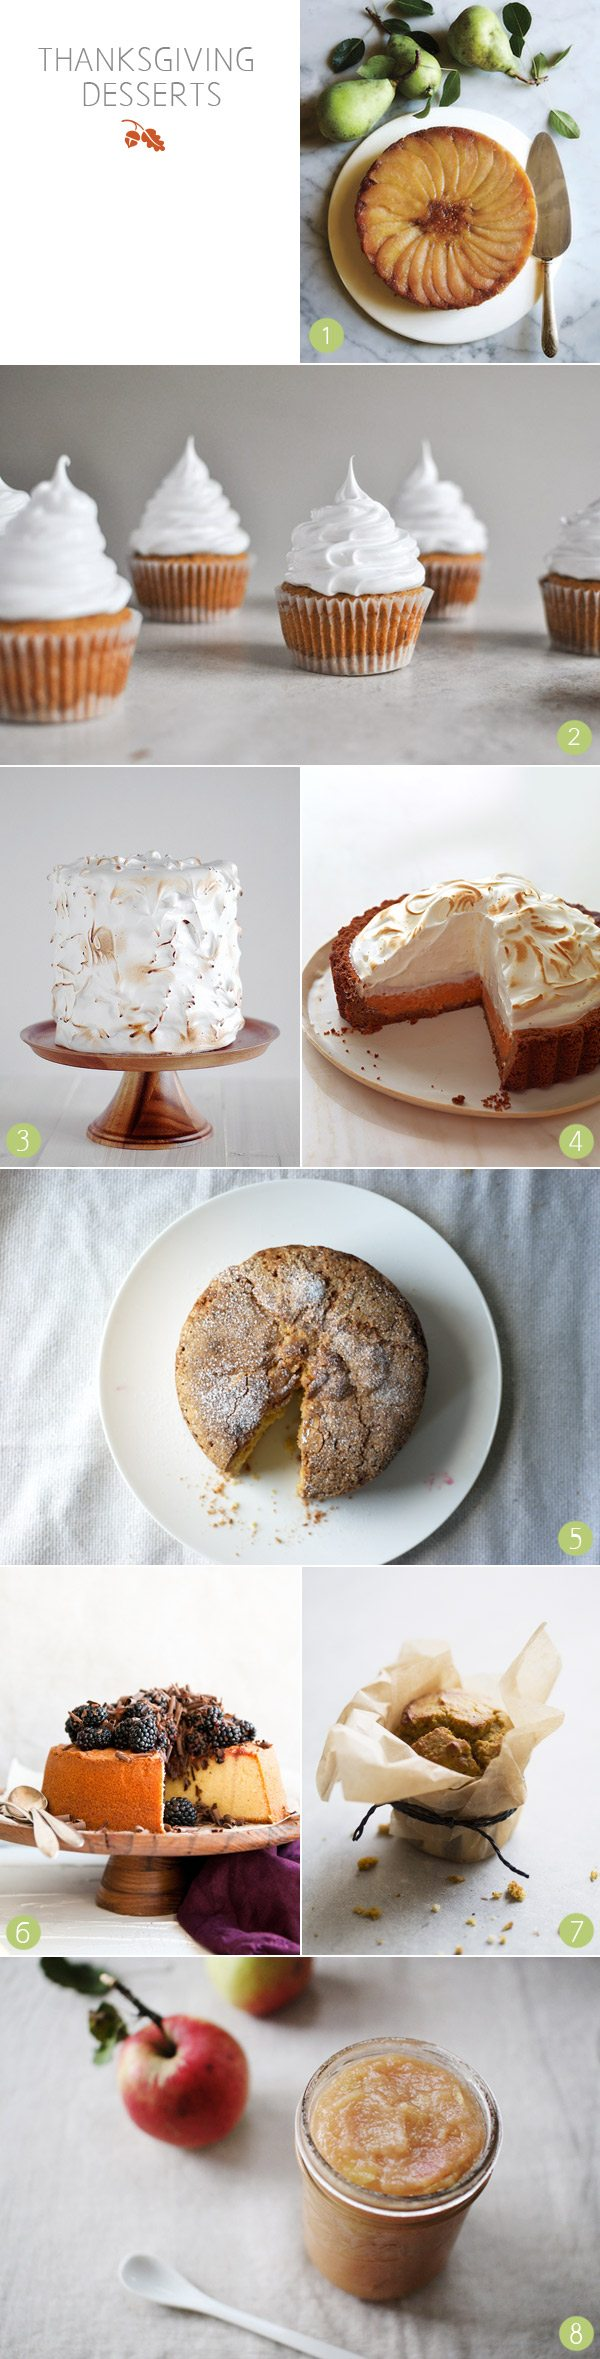 Thanksgiving desserts from The Sweetest Occasion